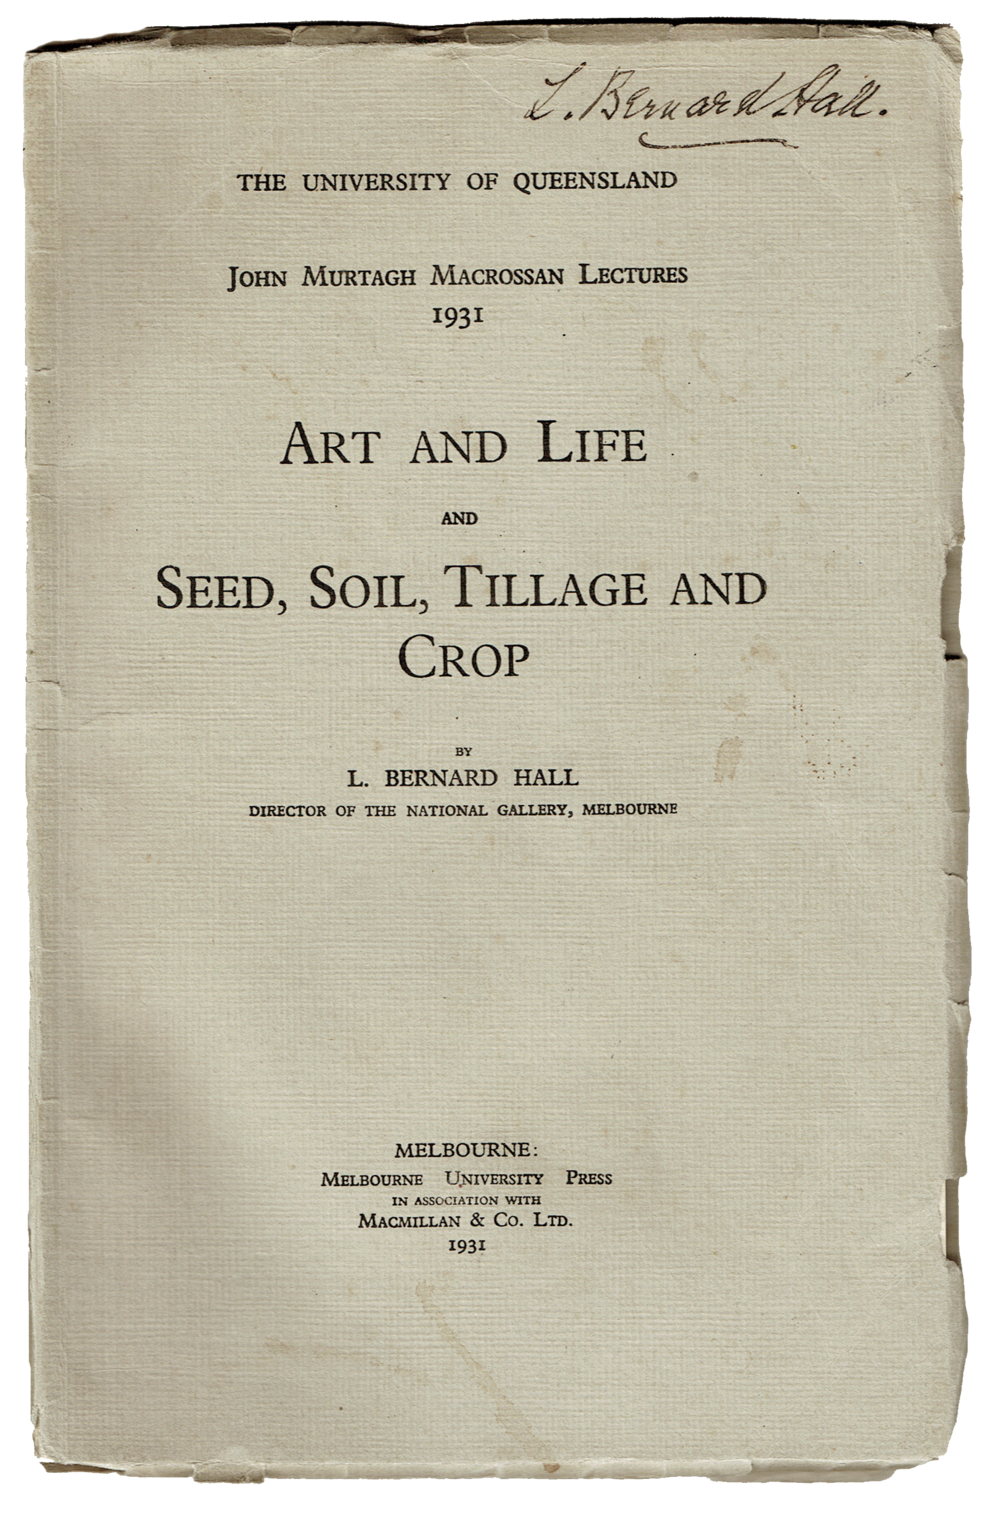 L. Bernard Hall, Lecture on  Art & Life,  1931